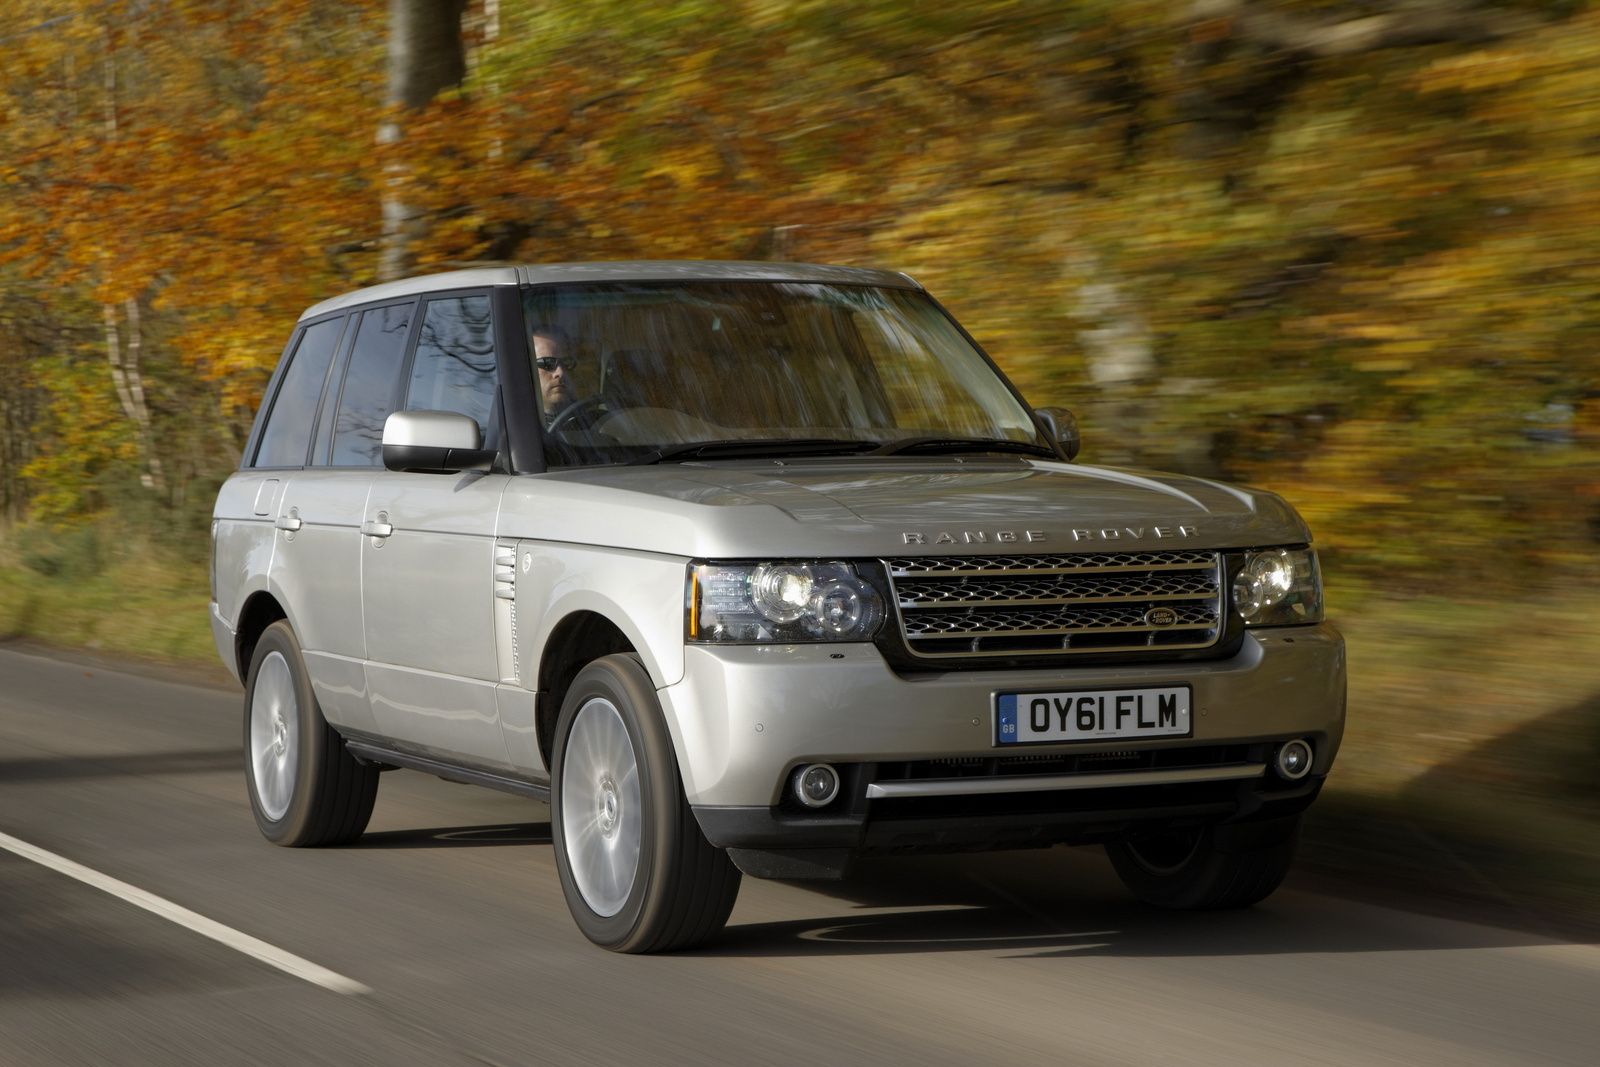 2012 land rover range rover front quarter view exterior manufacturer gallery_worthy